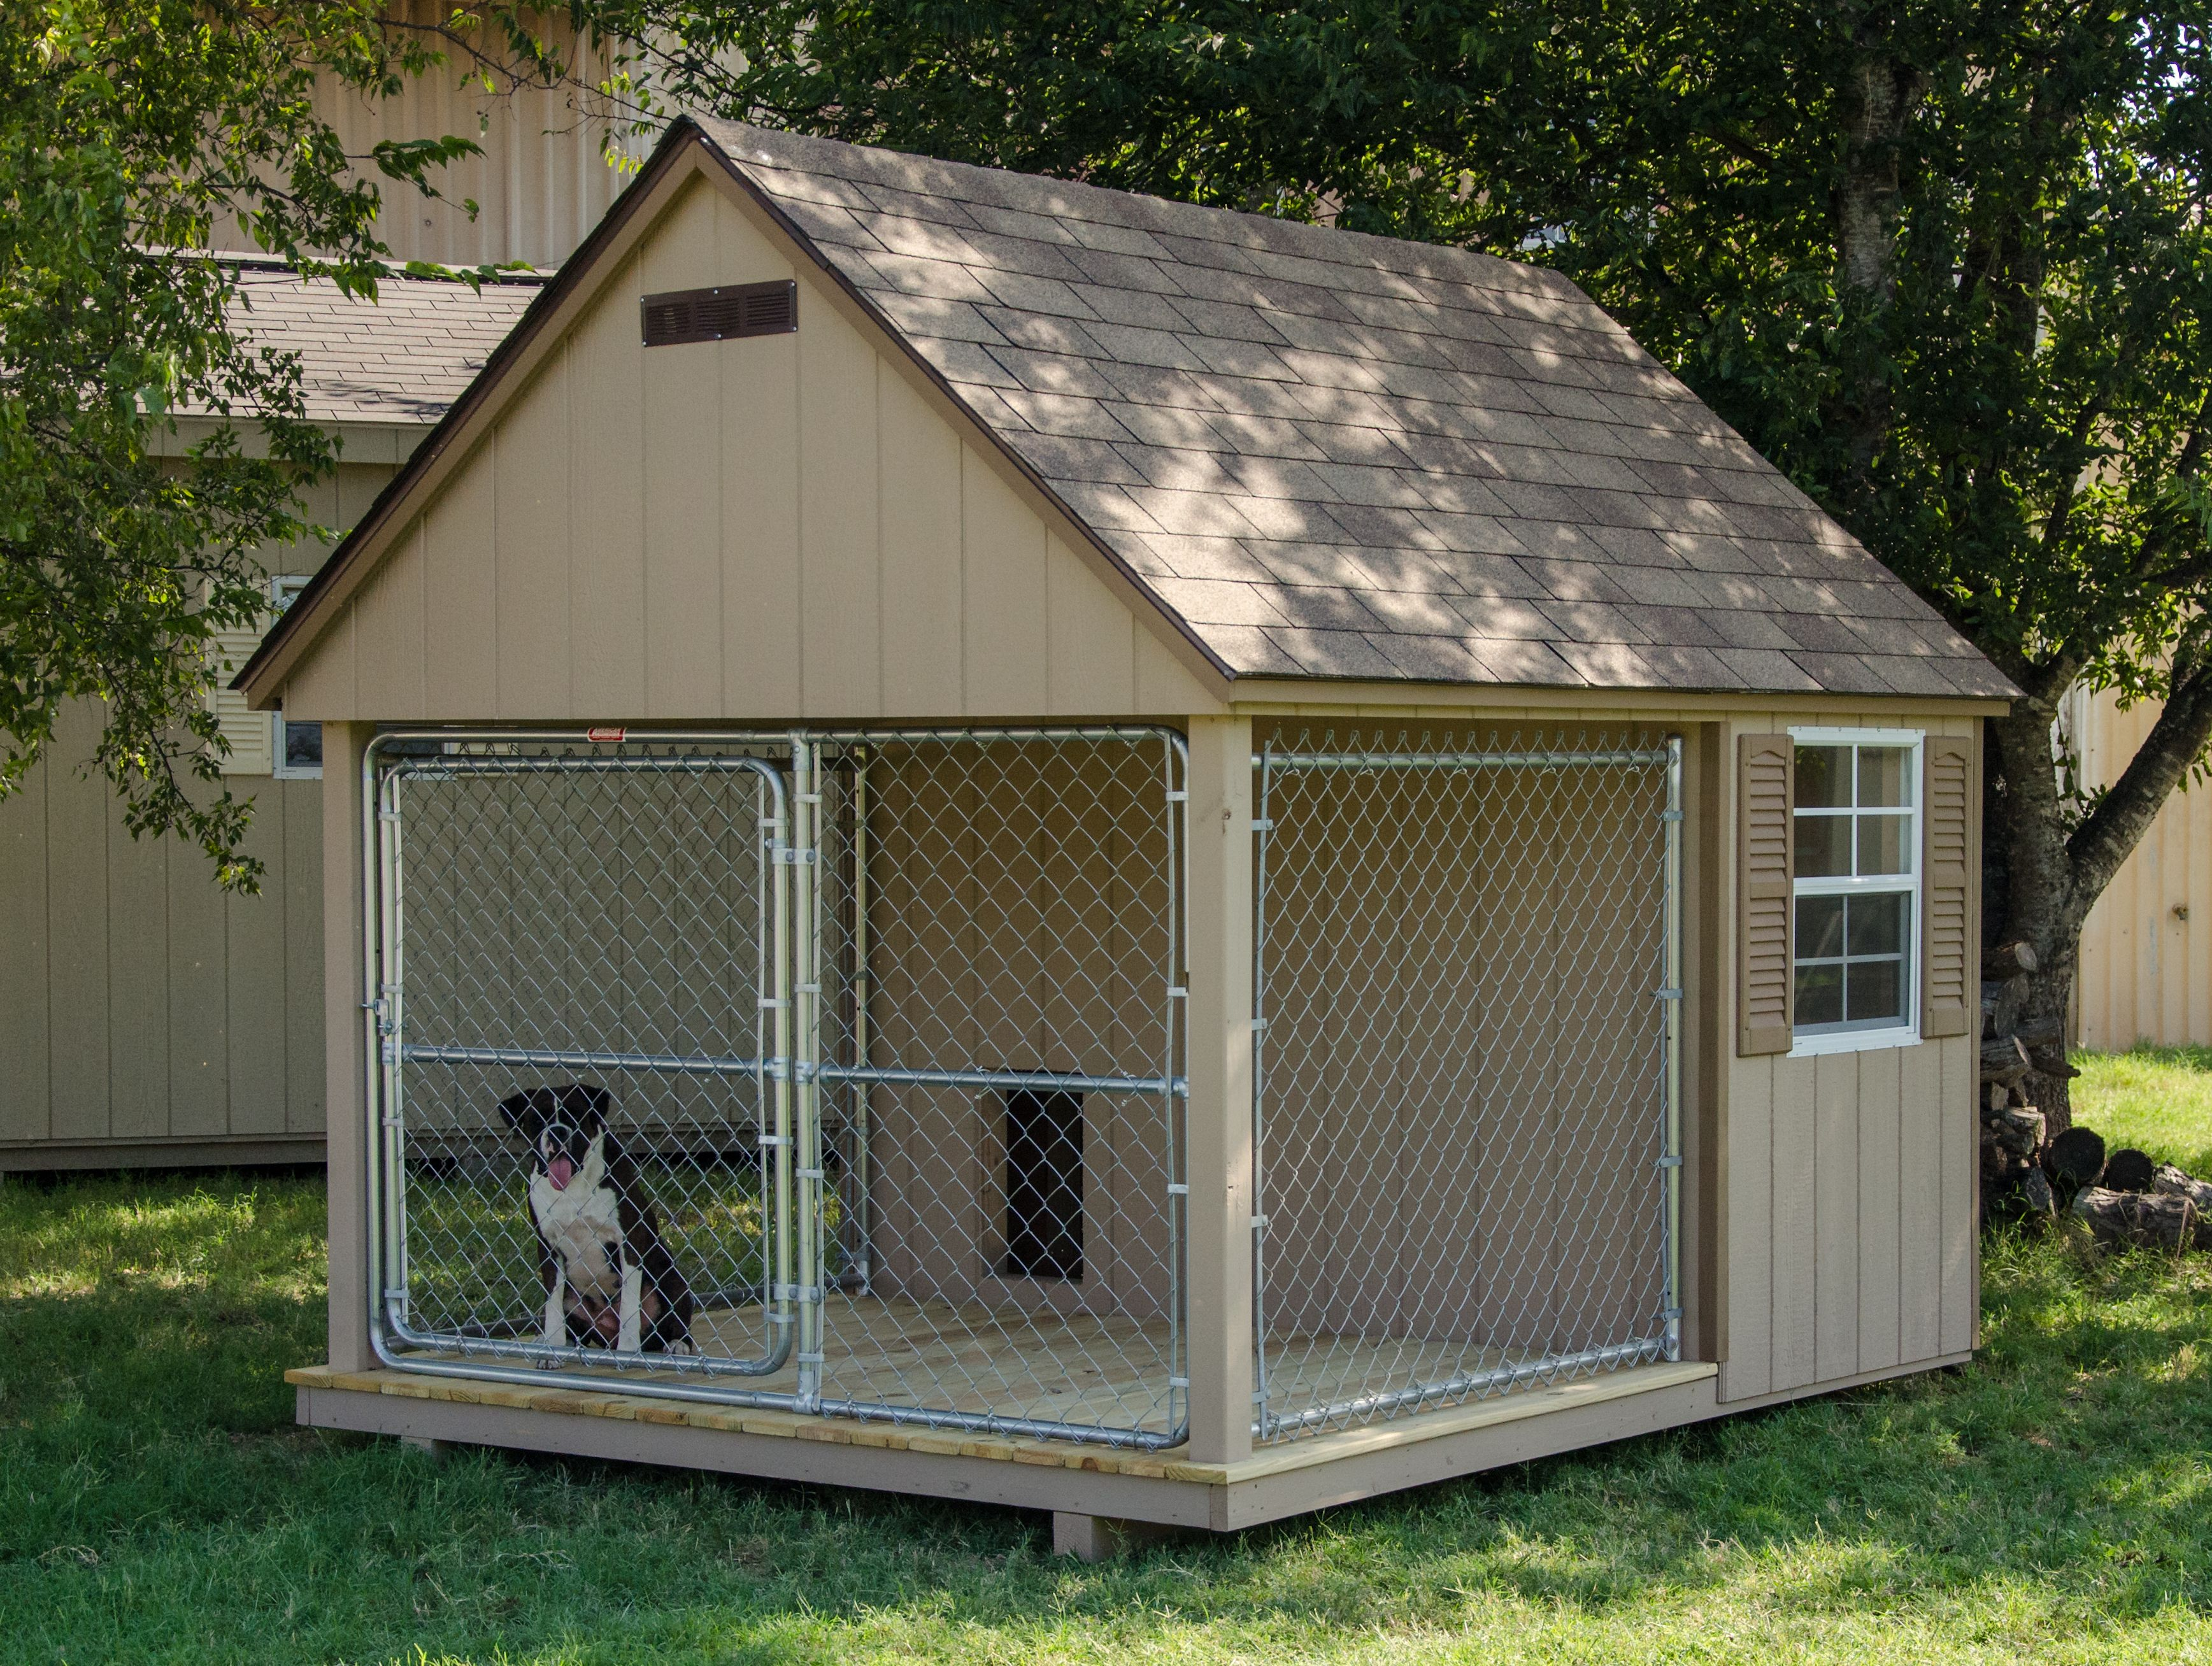 Affordable dog kennels for sale in texas 2020 model